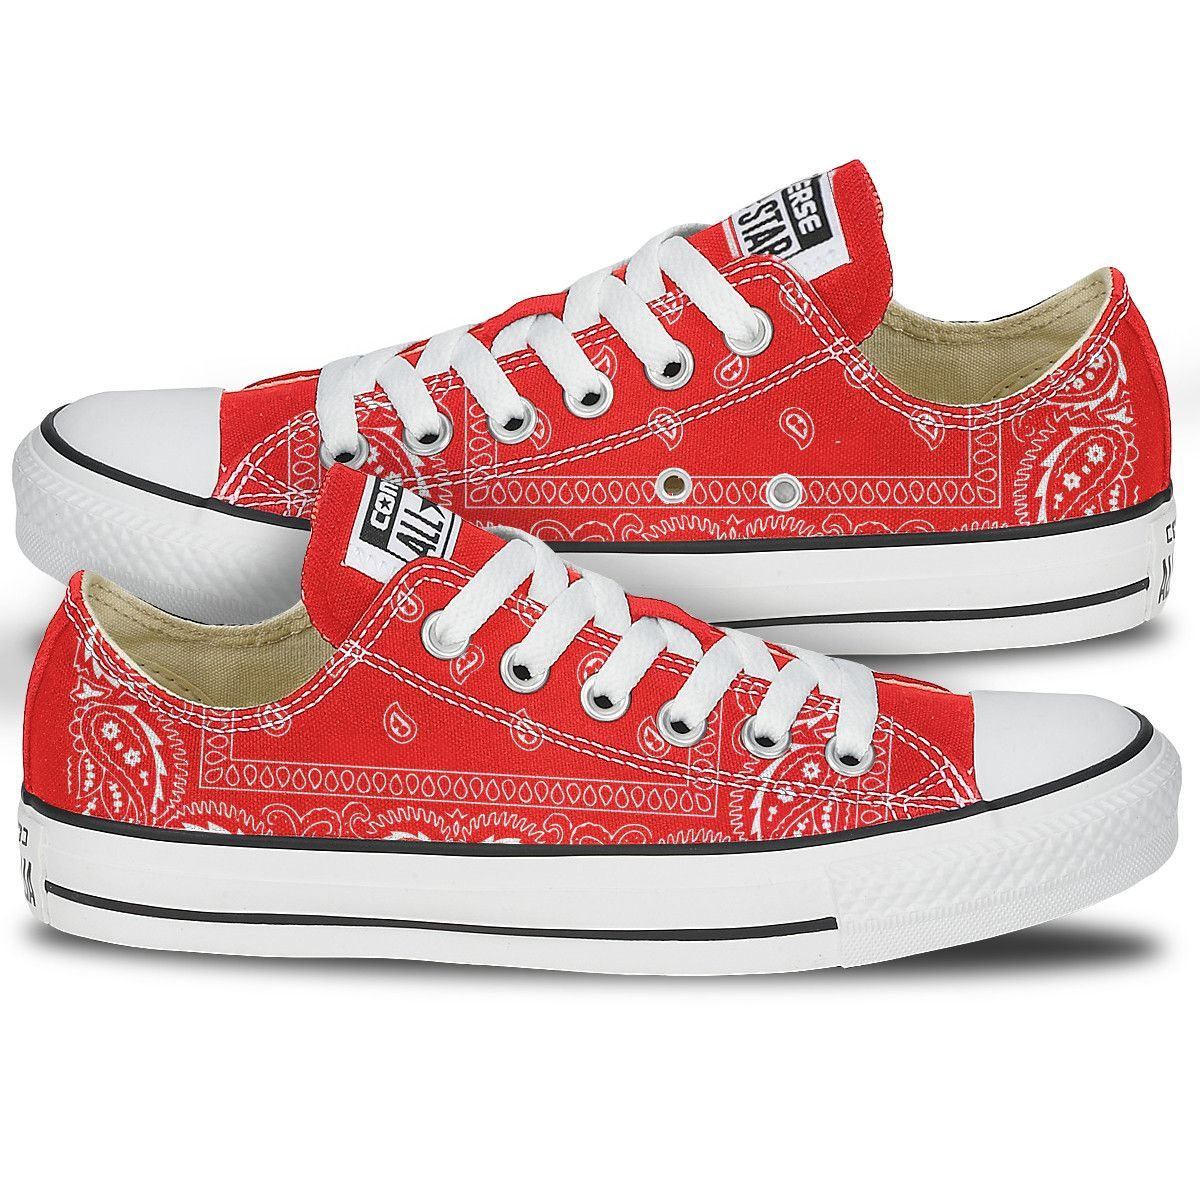 45637a237076 Red Bandana Converse Sneakers